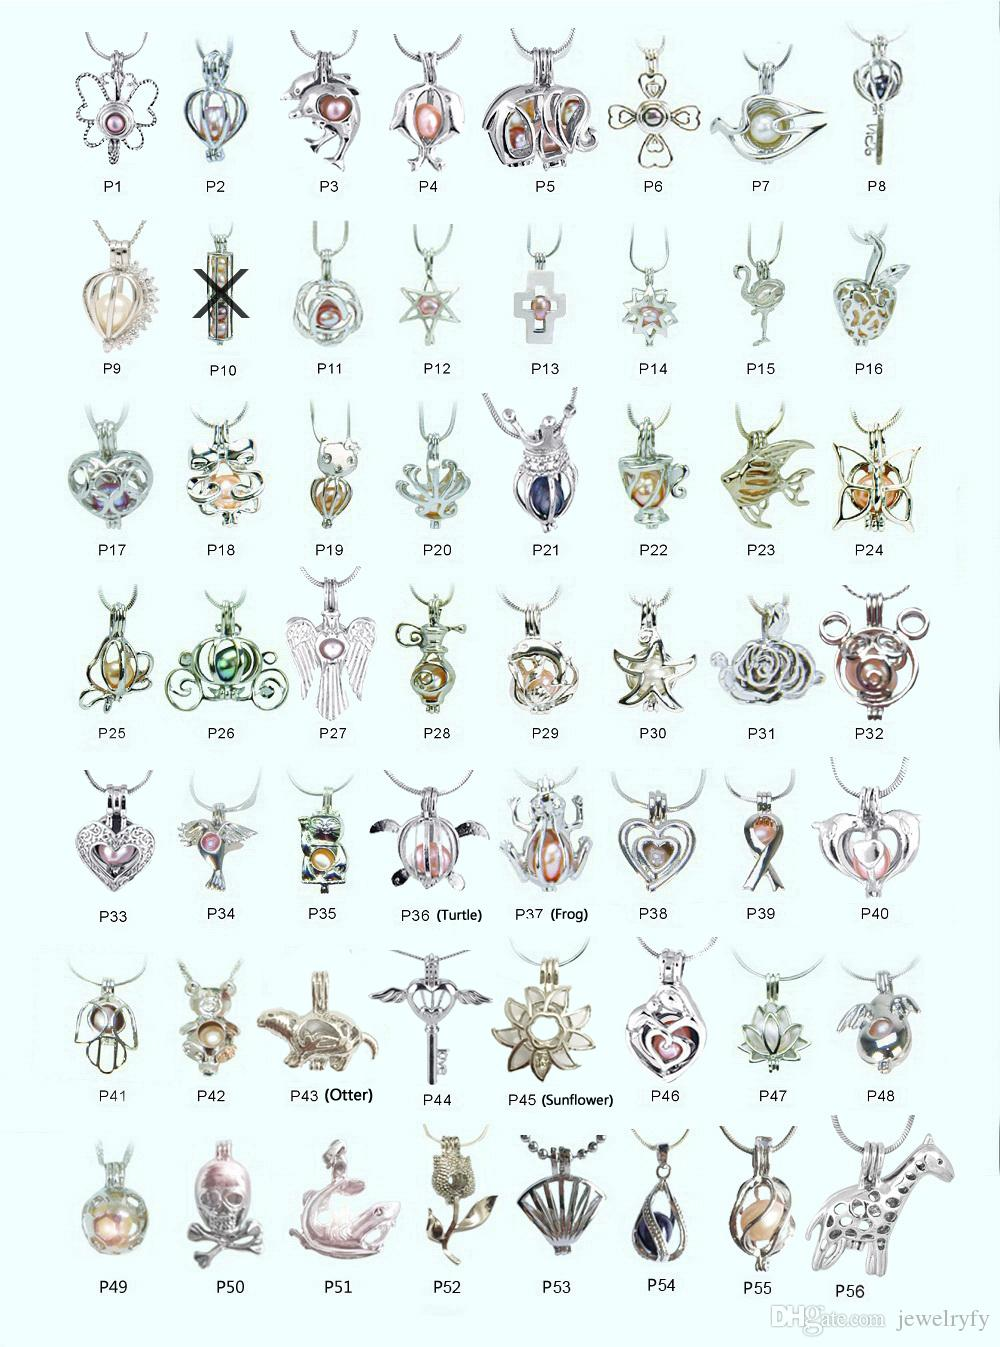 18kgp Fashion love wish pearl/ gem beads locket cages, lovely DIY charm pendant mountings wholesale 100pcs/lot (can mix different styles)